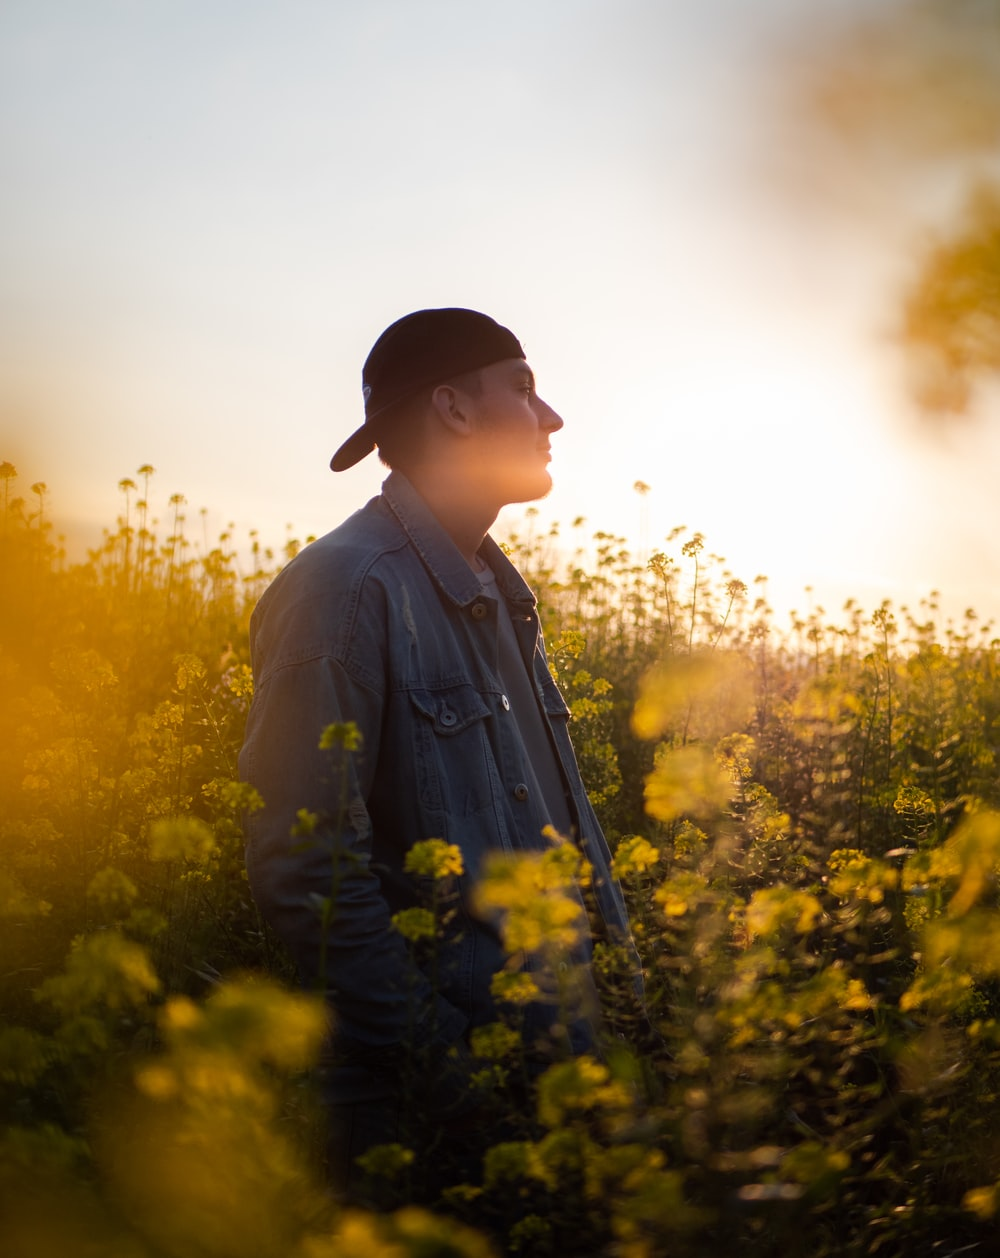 man in black hat standing on yellow flower field during daytime